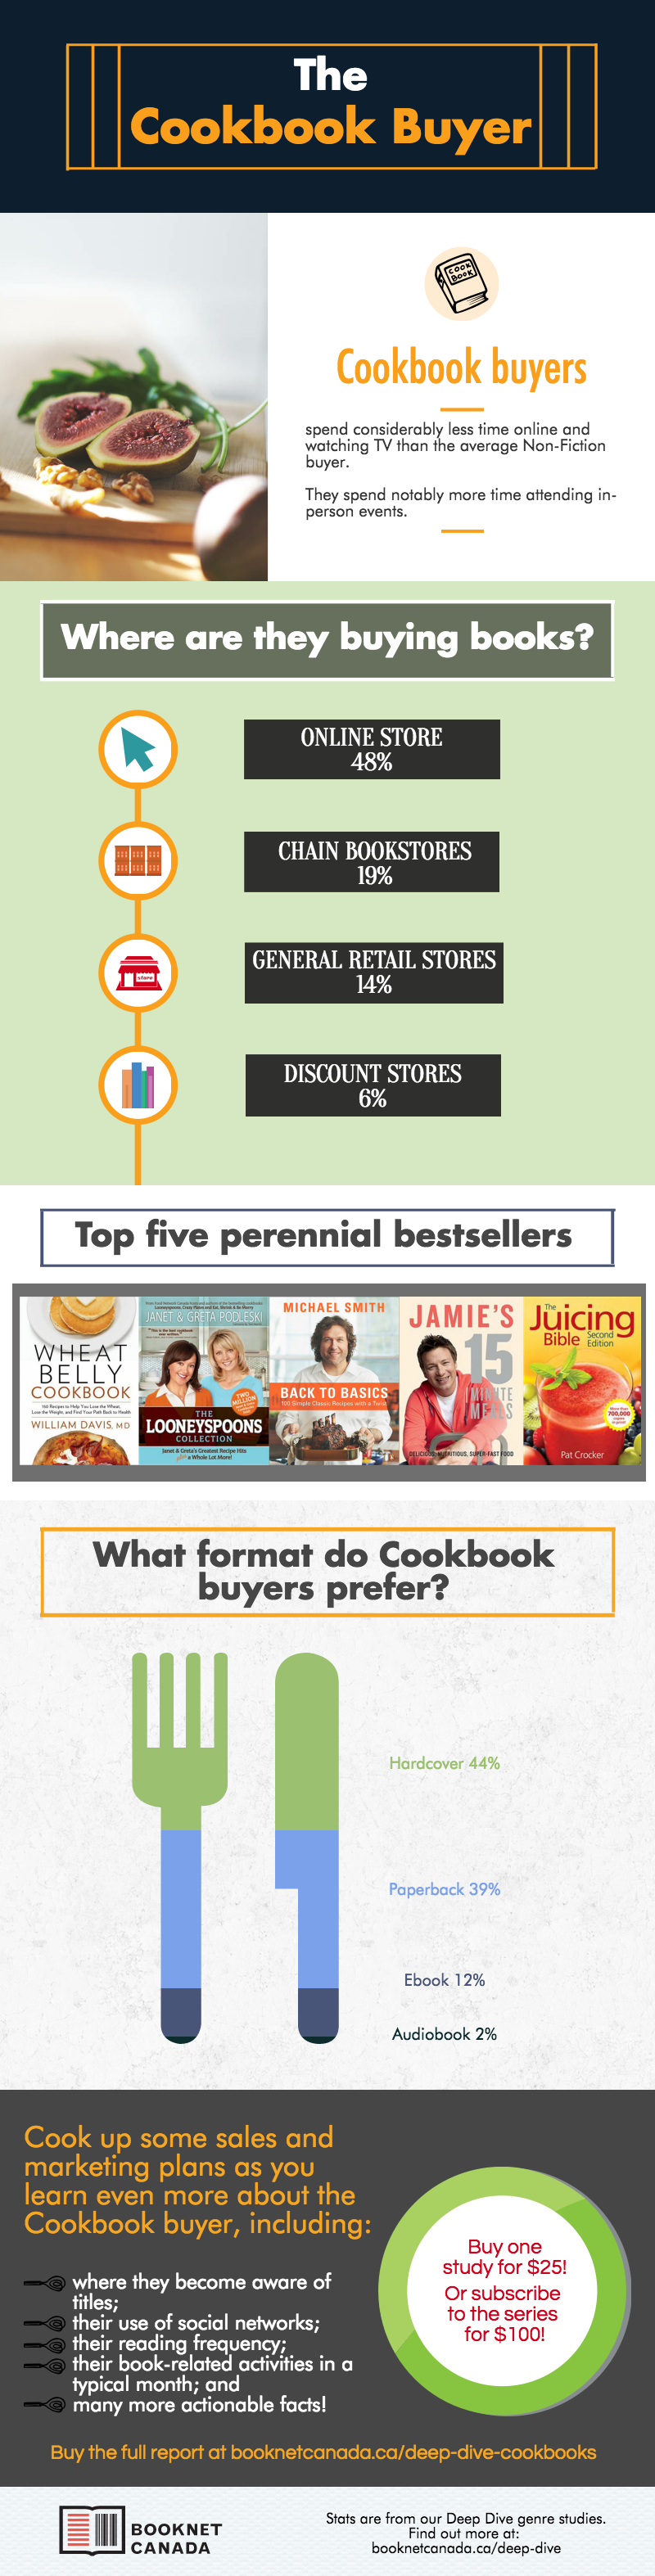 Cookbook buyer infographic